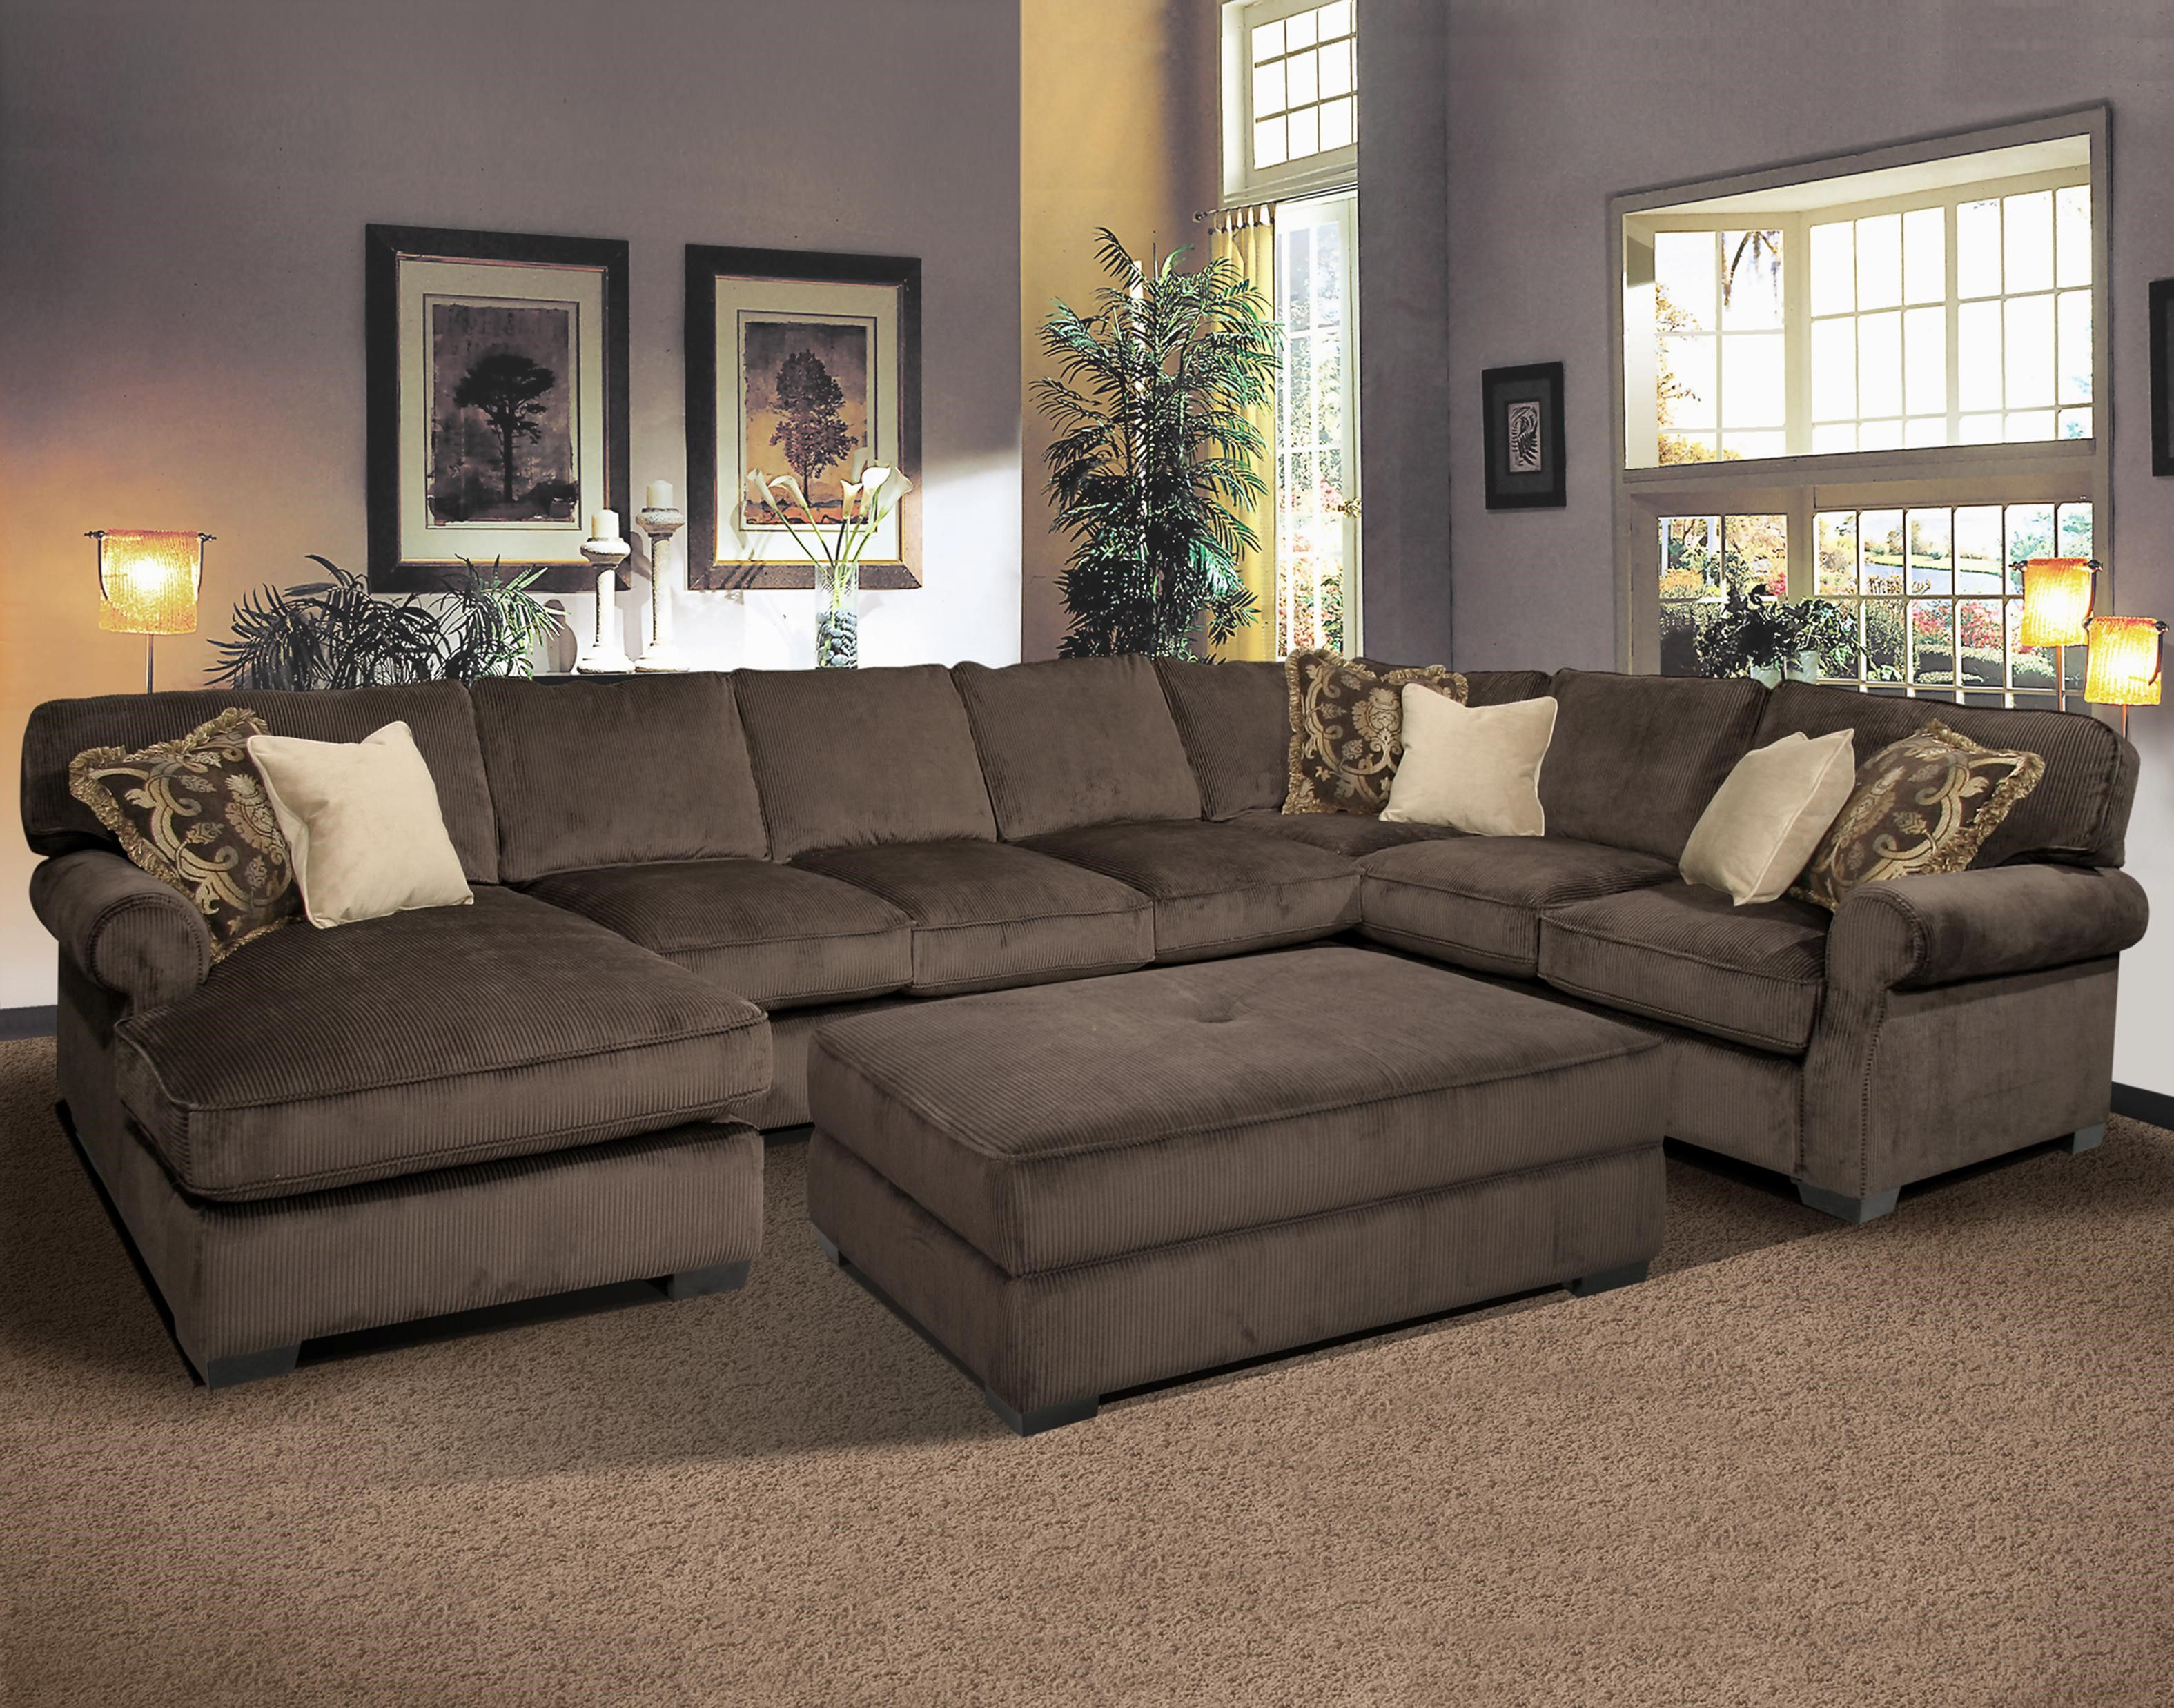 x couches sofa gallery potomac room overstuffed living in dazzling design brown leather furniturepany sizing couch